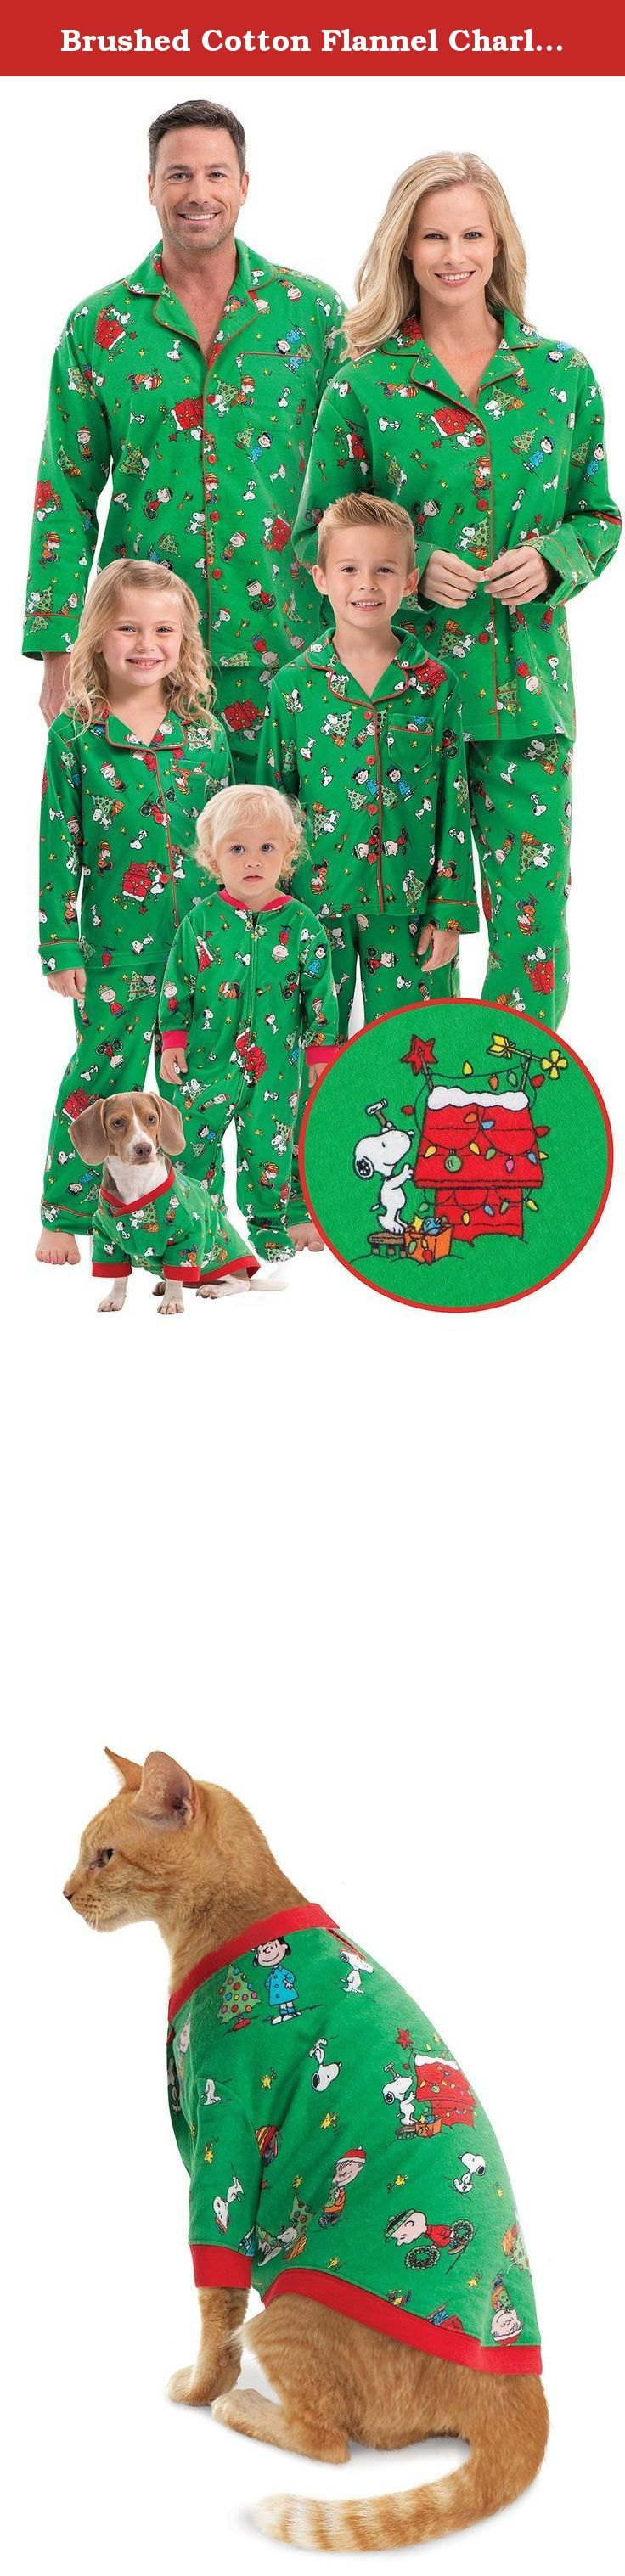 Brushed Cotton Flannel Charlie Brown Matching Christmas Pajamas for the Whole Family, Womens Small (4-6). Make it a Charlie Brown Christmas with these matching family pajamas. Party with the Peanuts gang this Christmas! Charlie Brown, Lucy, Linus, Snoopythey're all decking the halls on these super fun, super comfortable PJs made of our high-quality, flannel fabric that's woven and double brushed to keep its color and get softer wash after wash. Adults, boys, and girls feature full-length...